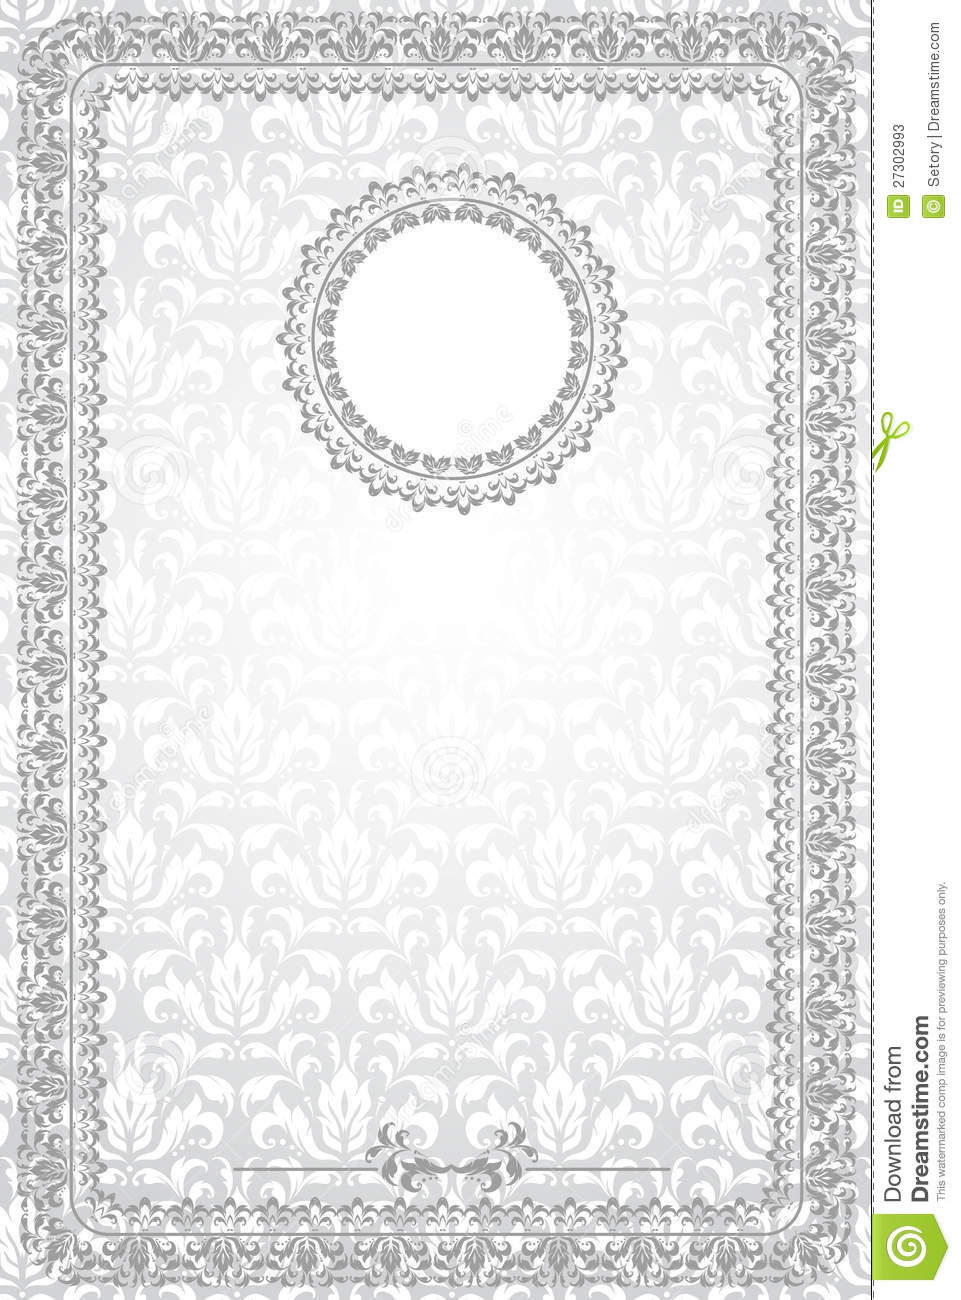 Blank certificate stock vector. Illustration of pattern